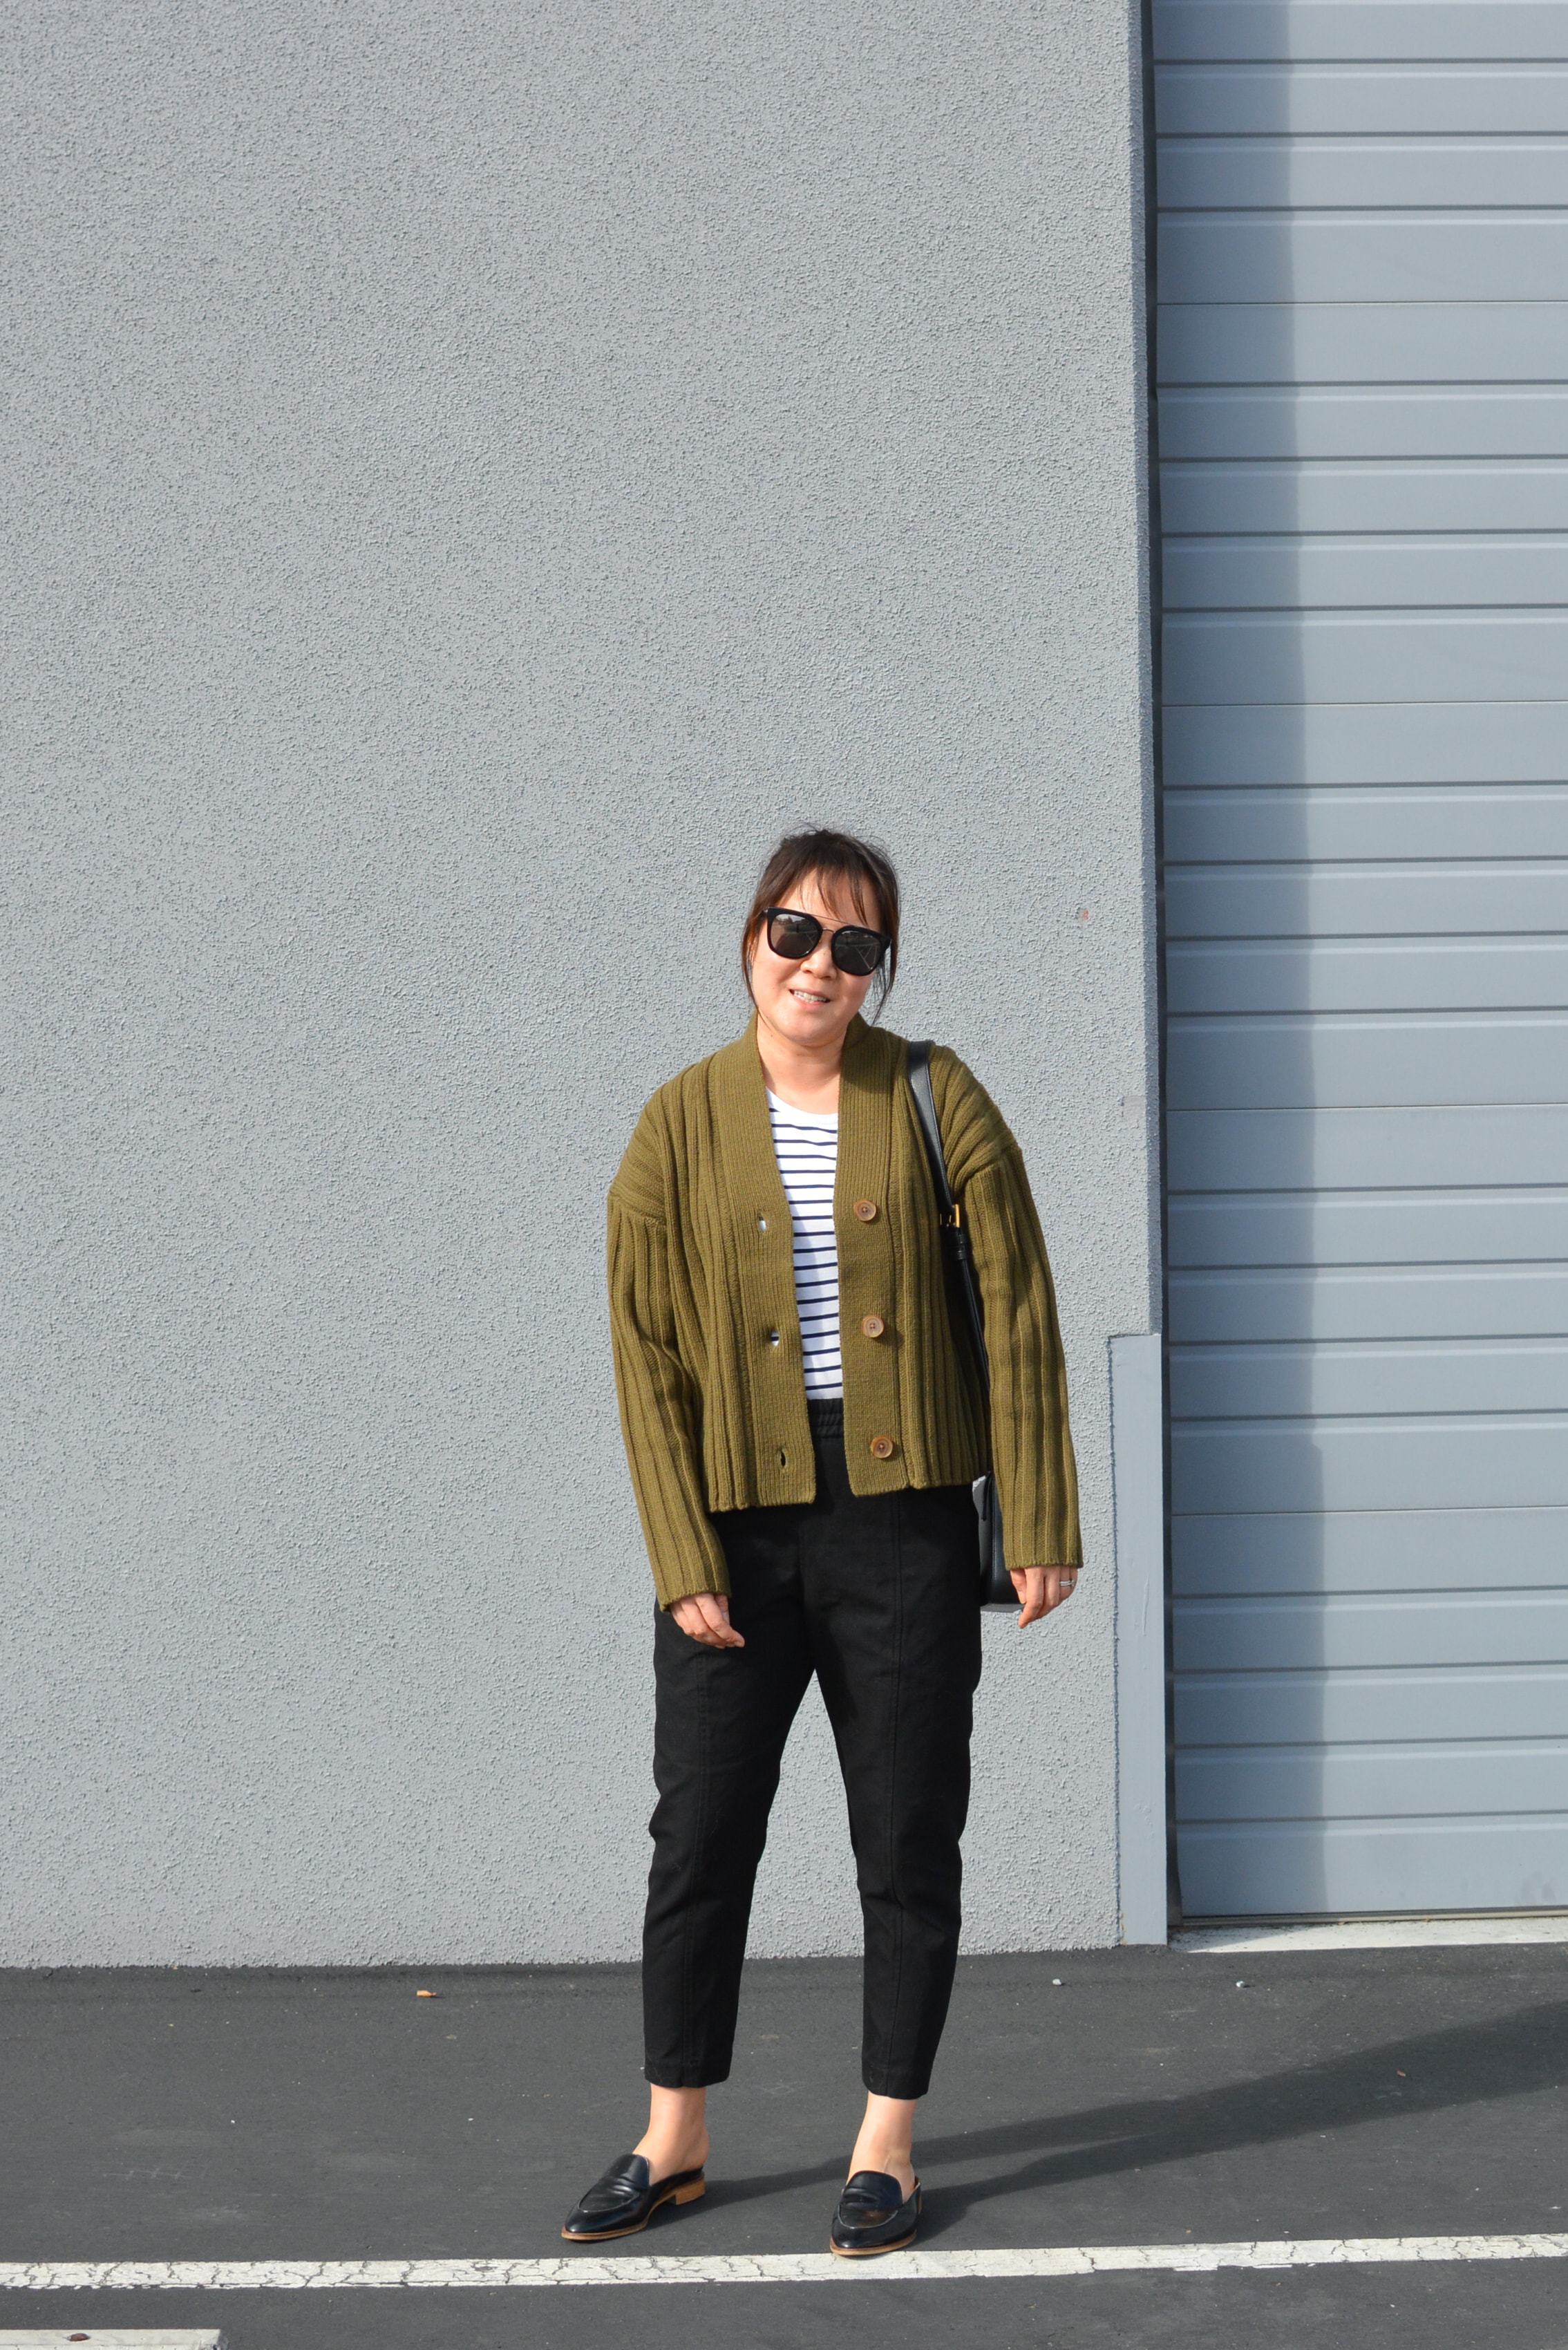 Everlane review the Wool-Cashmere Rib V-Neck Cardigan (4 of 6)-min.jpg